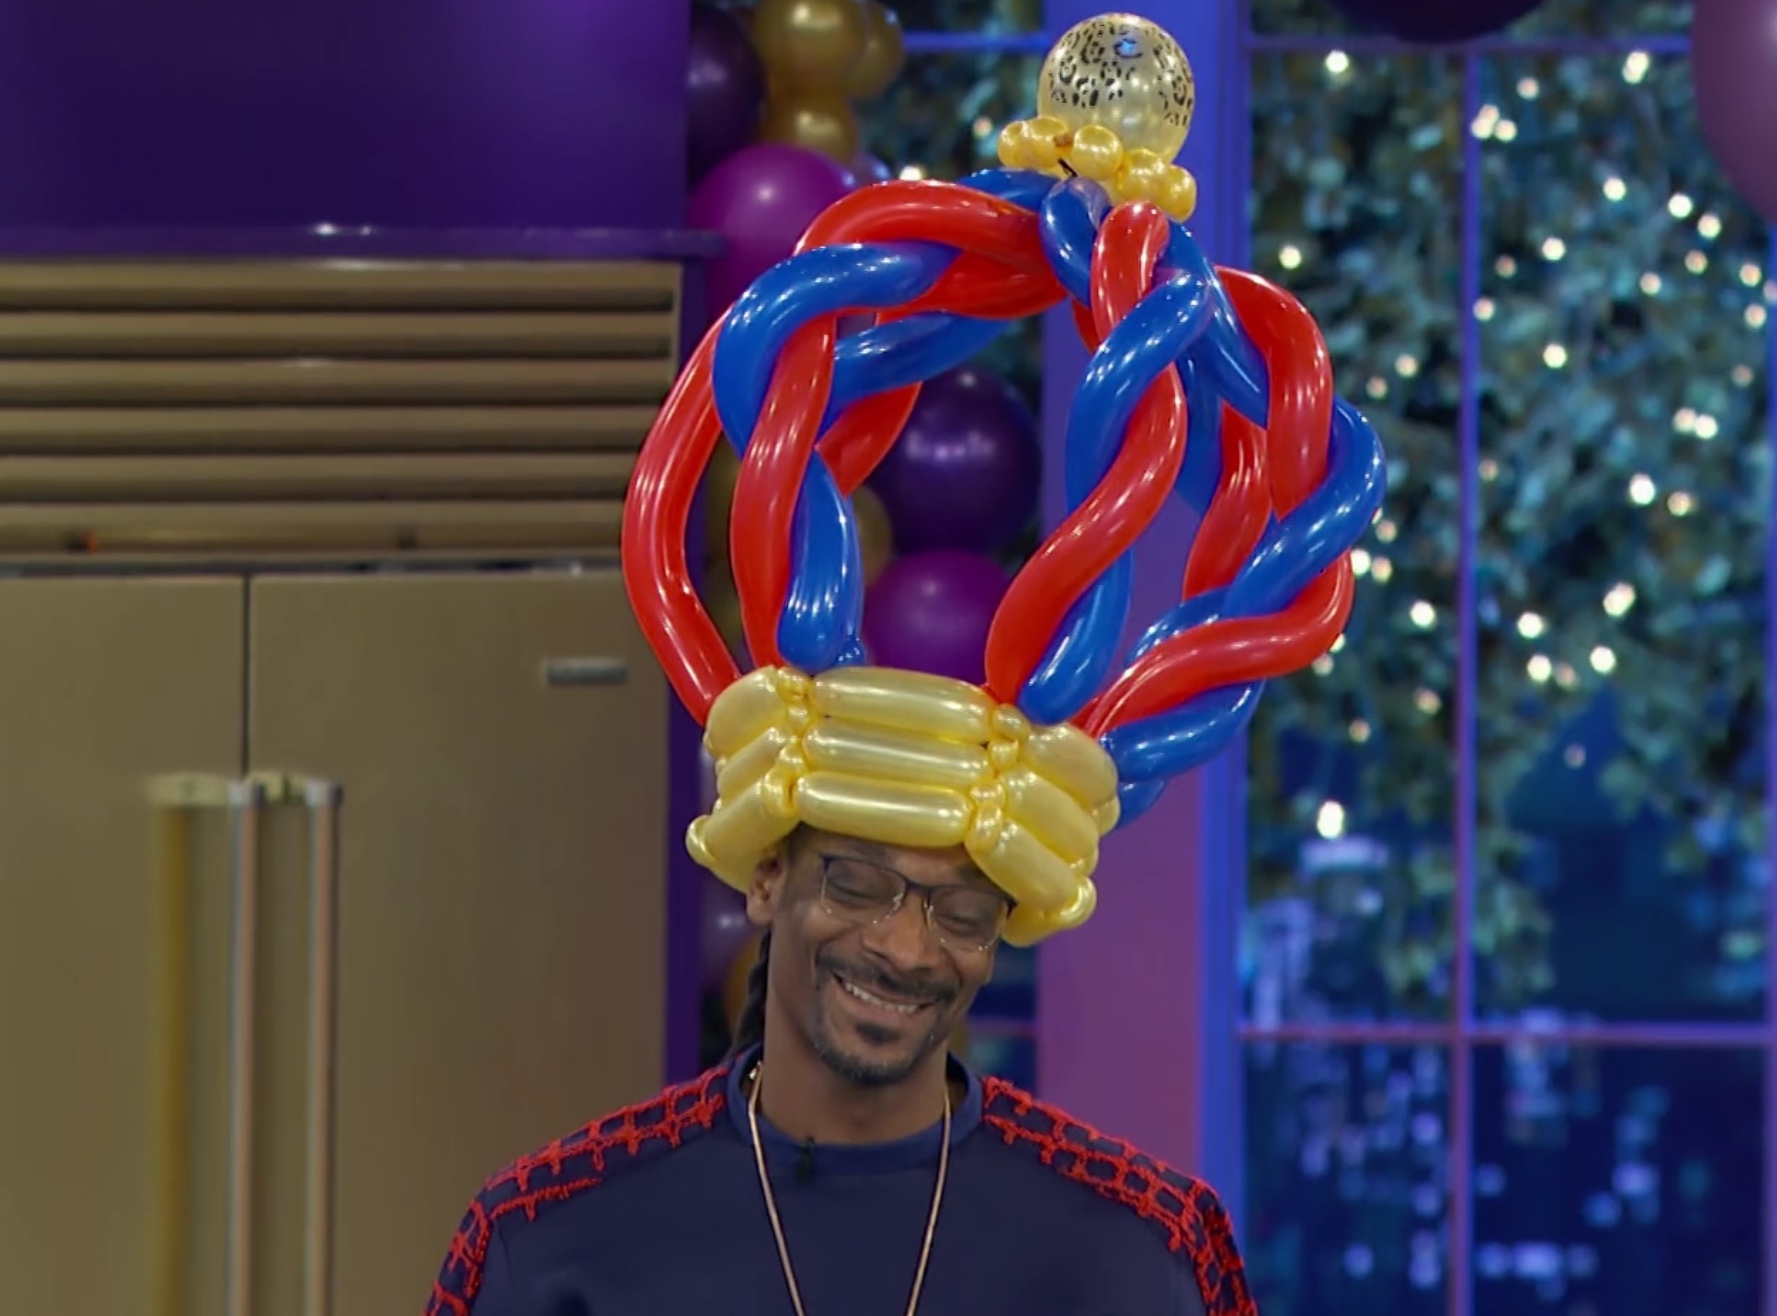 Balloon Hats on Martha and Snoops Potluck Dinner Party